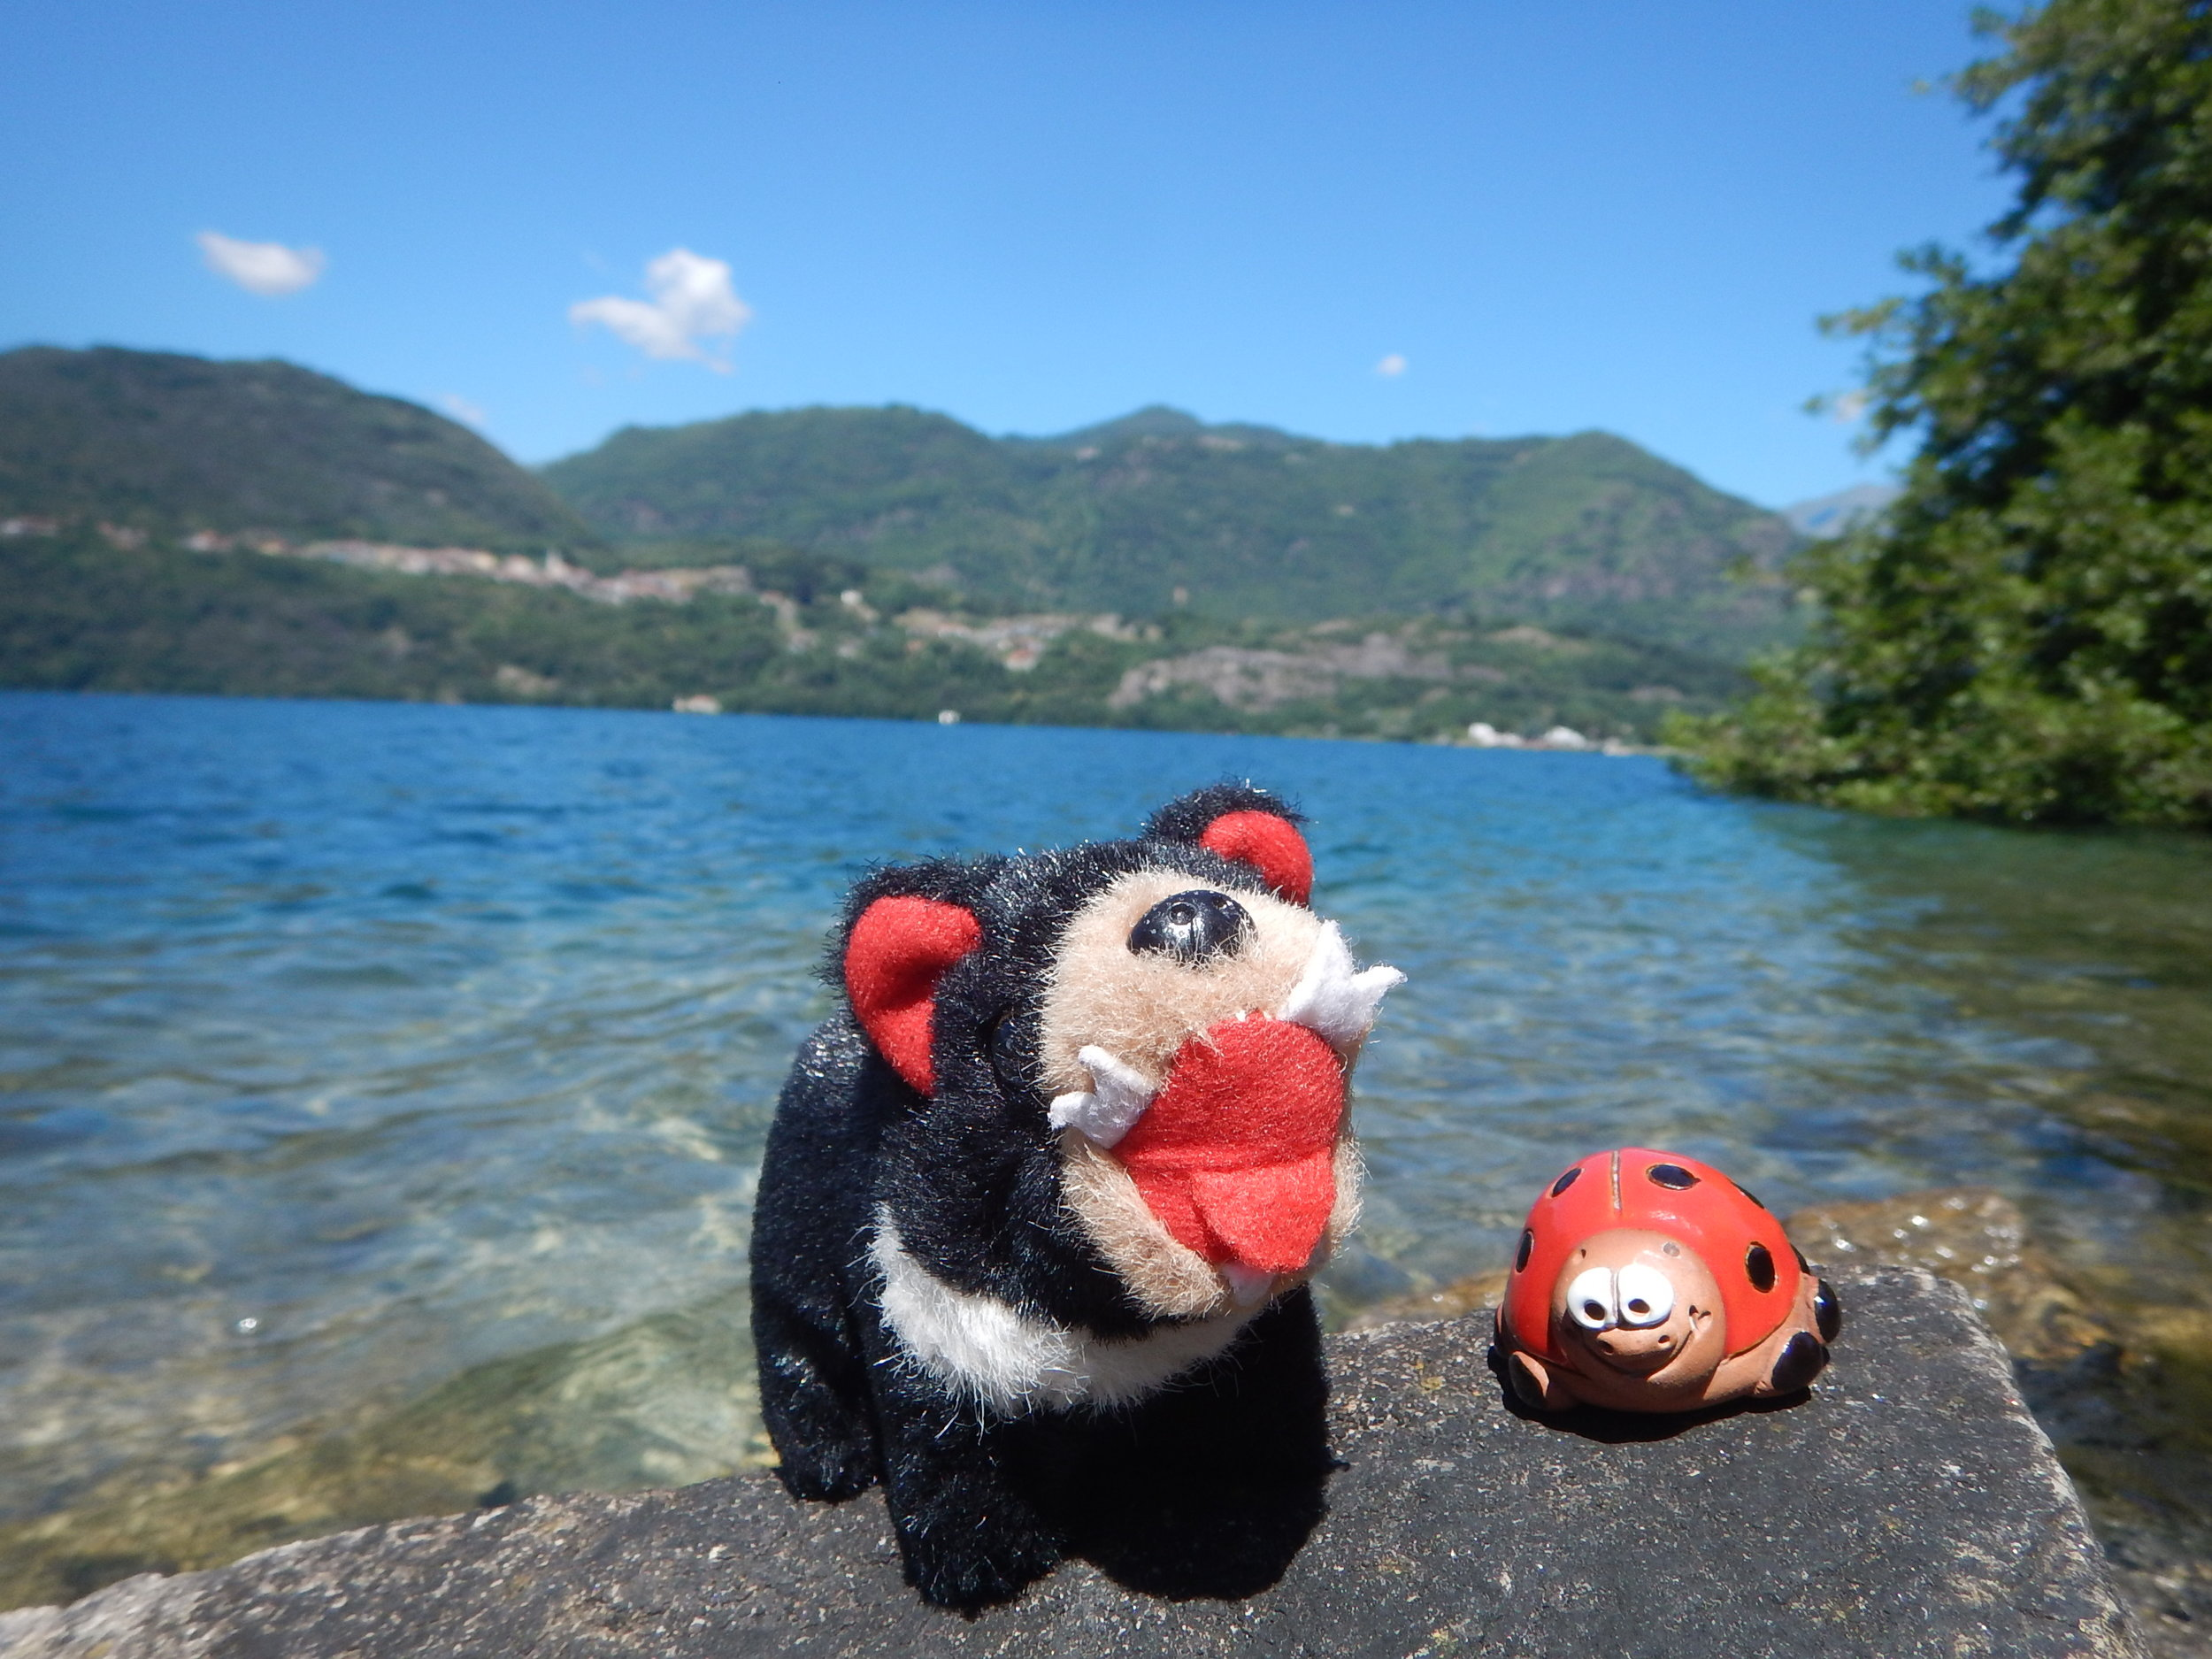 Harri has a companion for Italy. The little ladybird is from Montipulciano, a pressie from Debora after her visit there last year.